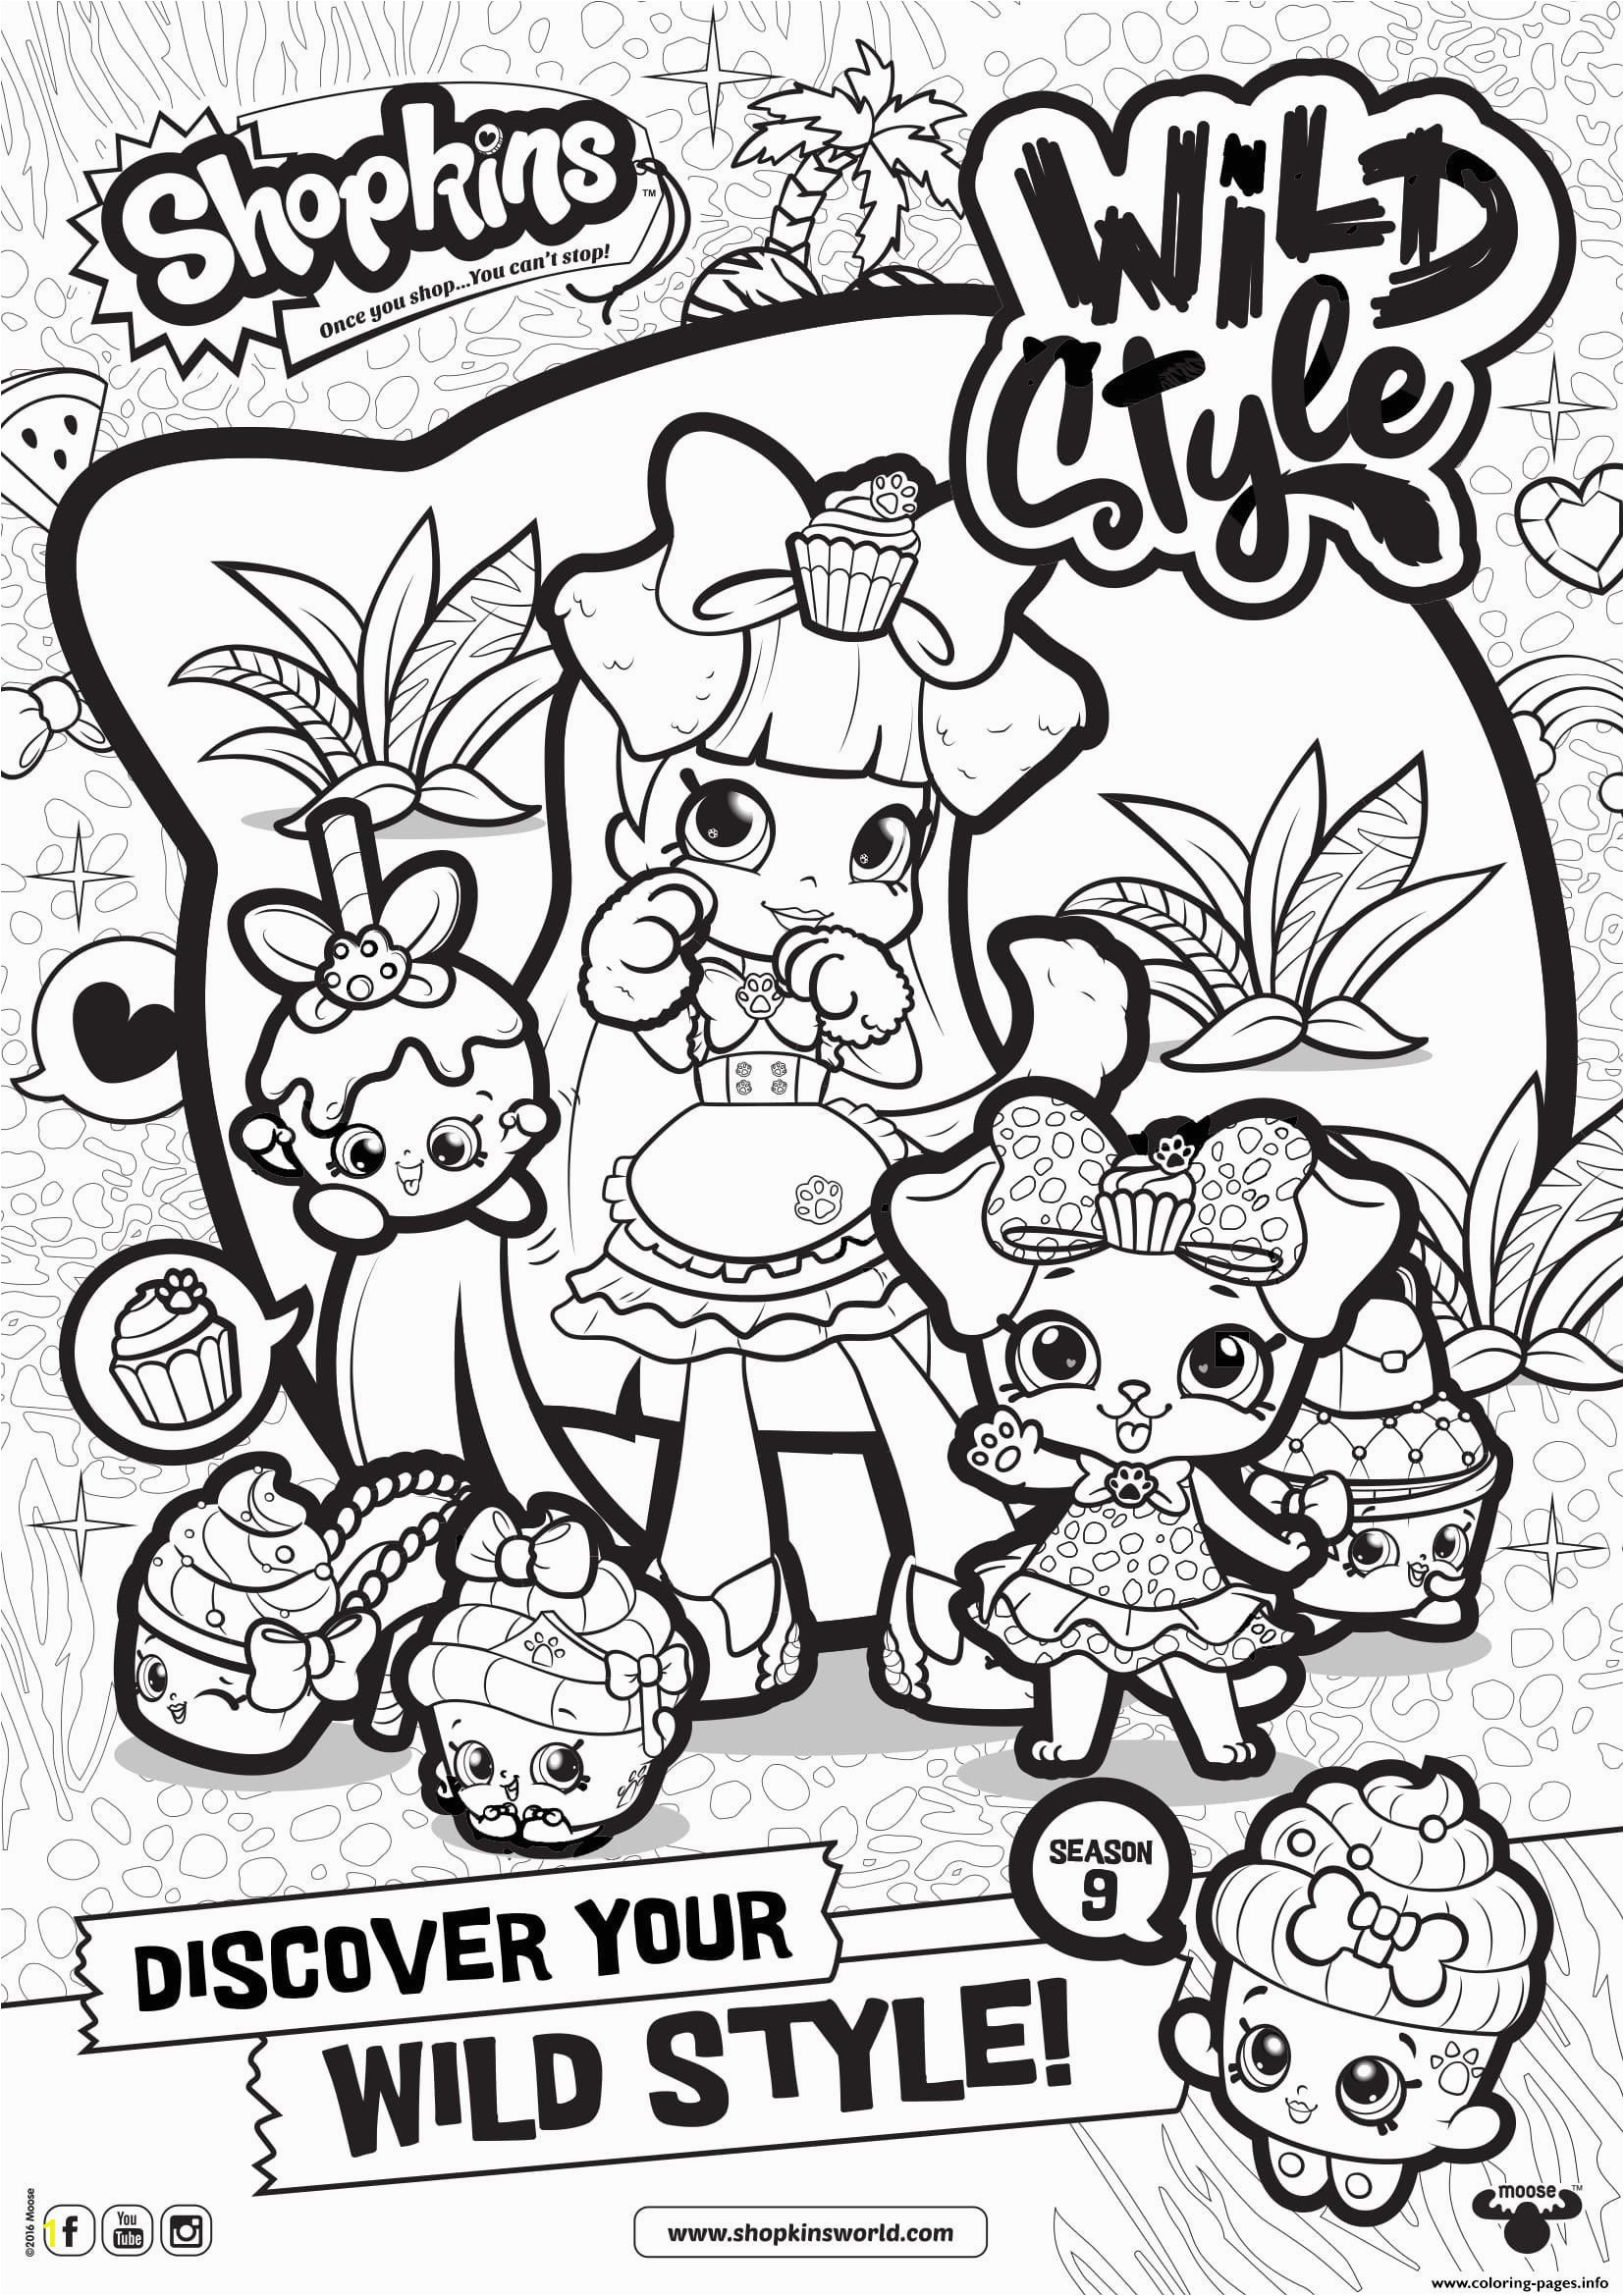 Shopkins Coloring Pages Season 10 Print Shopkins Season 9 Wild Style 8 Coloring Pages